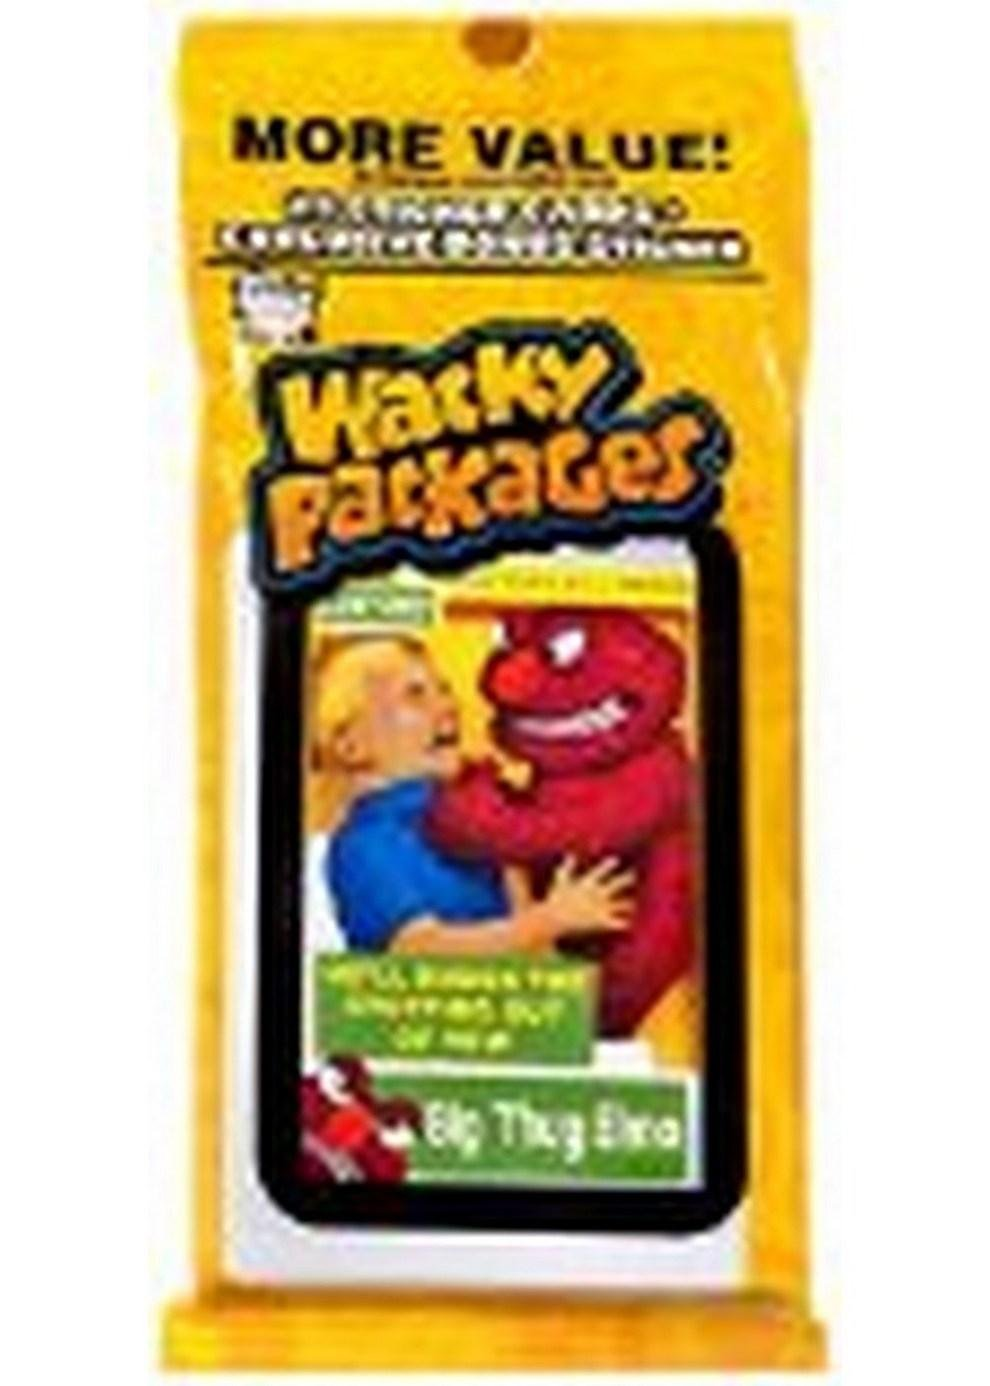 Wacky Packages 2014 Wacky Packages Trading Card Value Pack 2014 Trading Card Value Pack [23 Sticker Cards + Exclusive Bonus Sticker]